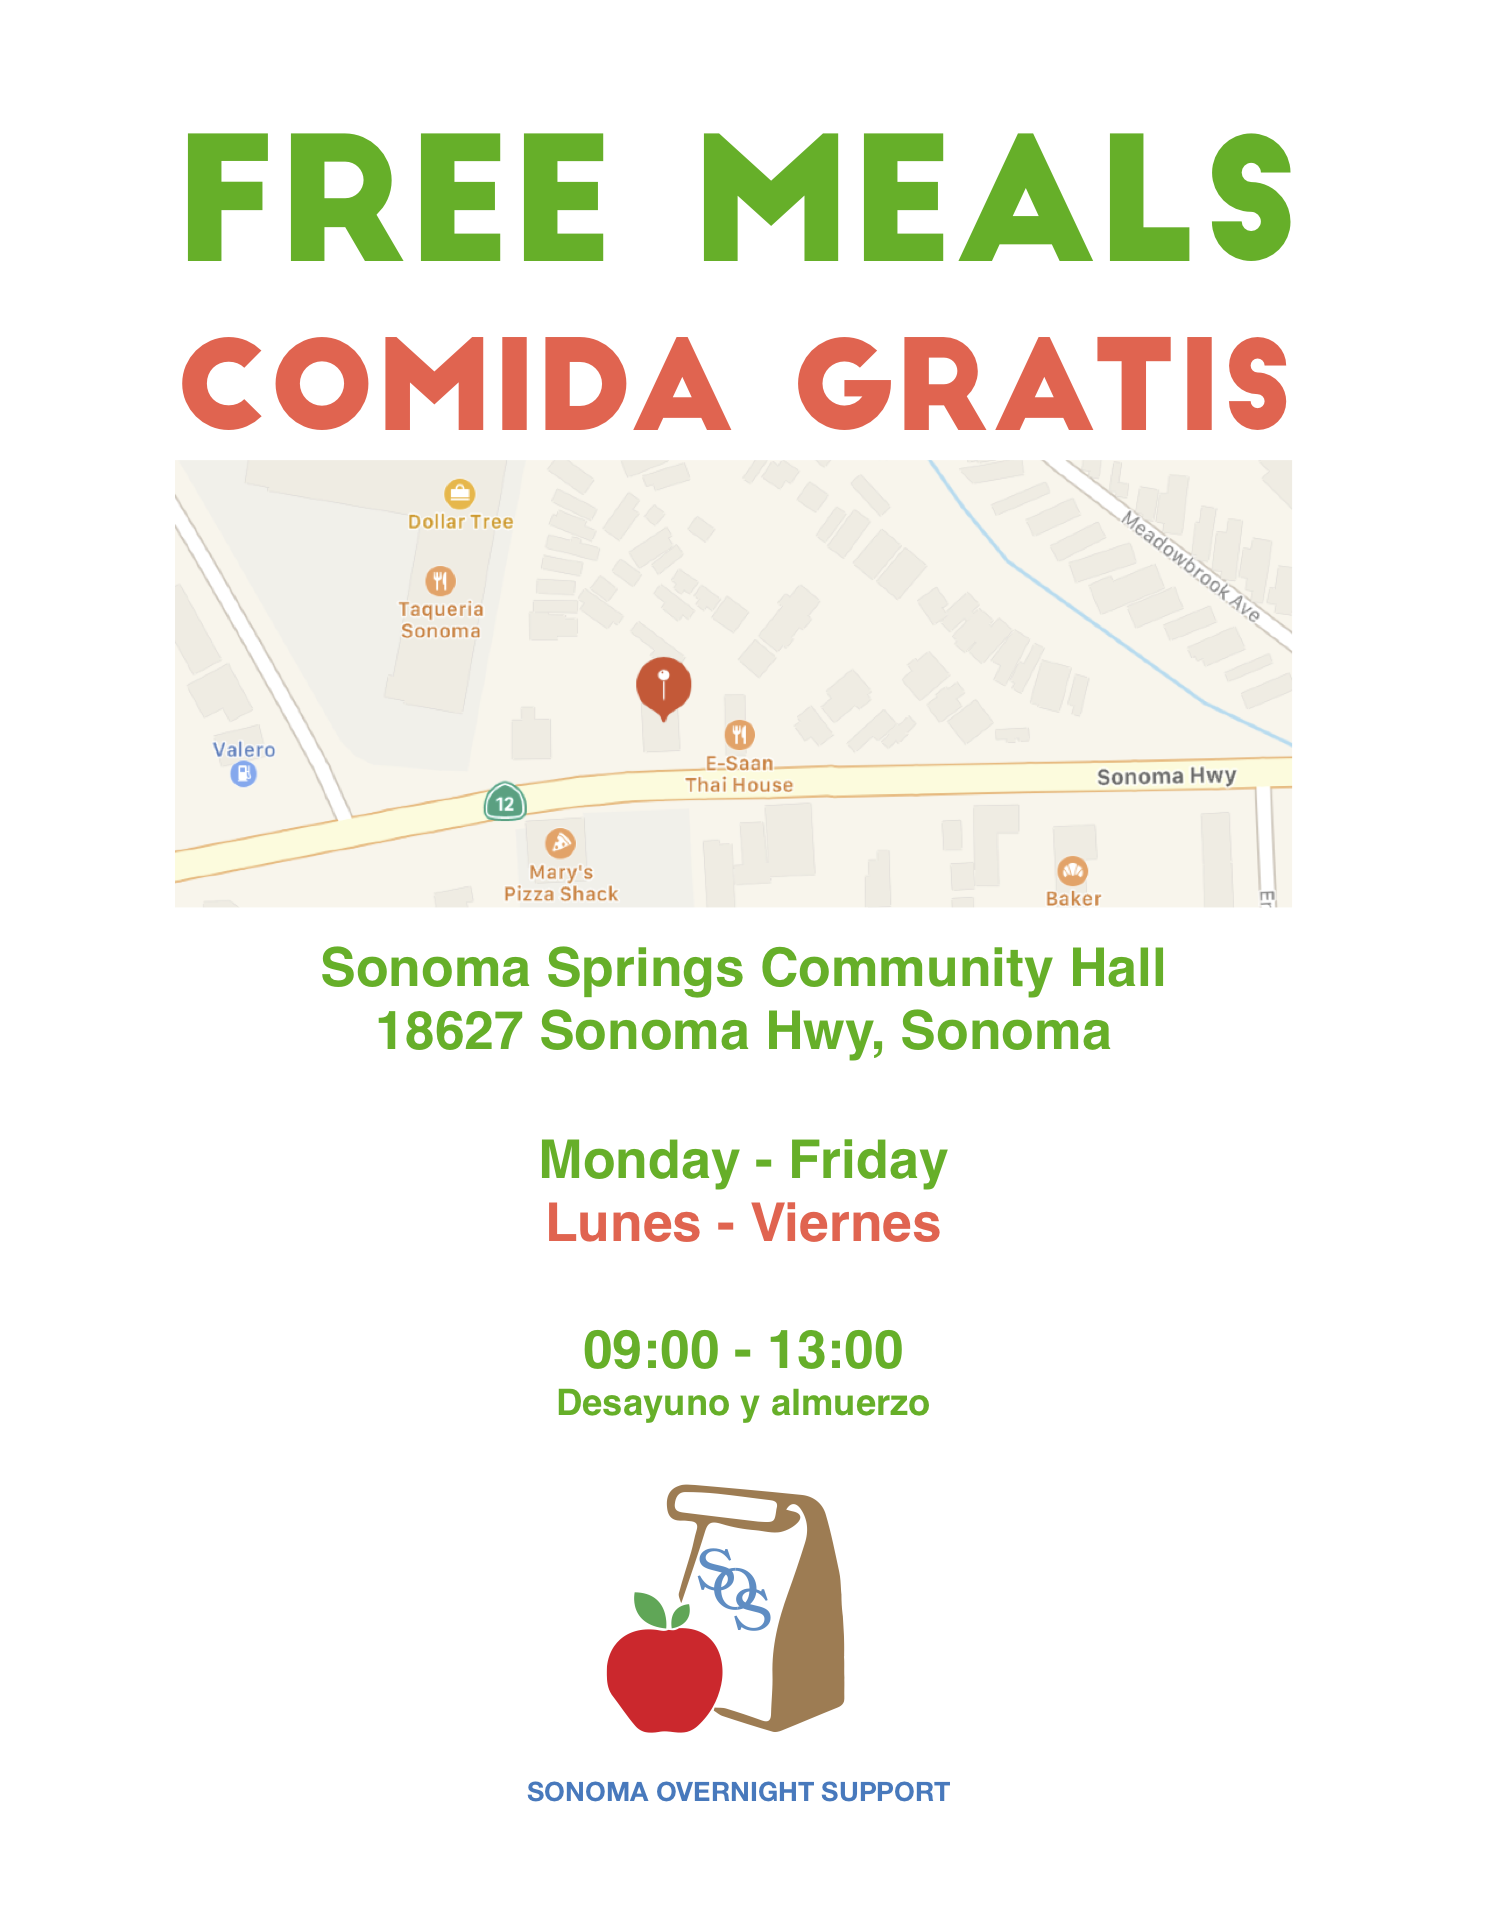 SOS Flyer for Free Meals at Sonoma Springs Community Hall